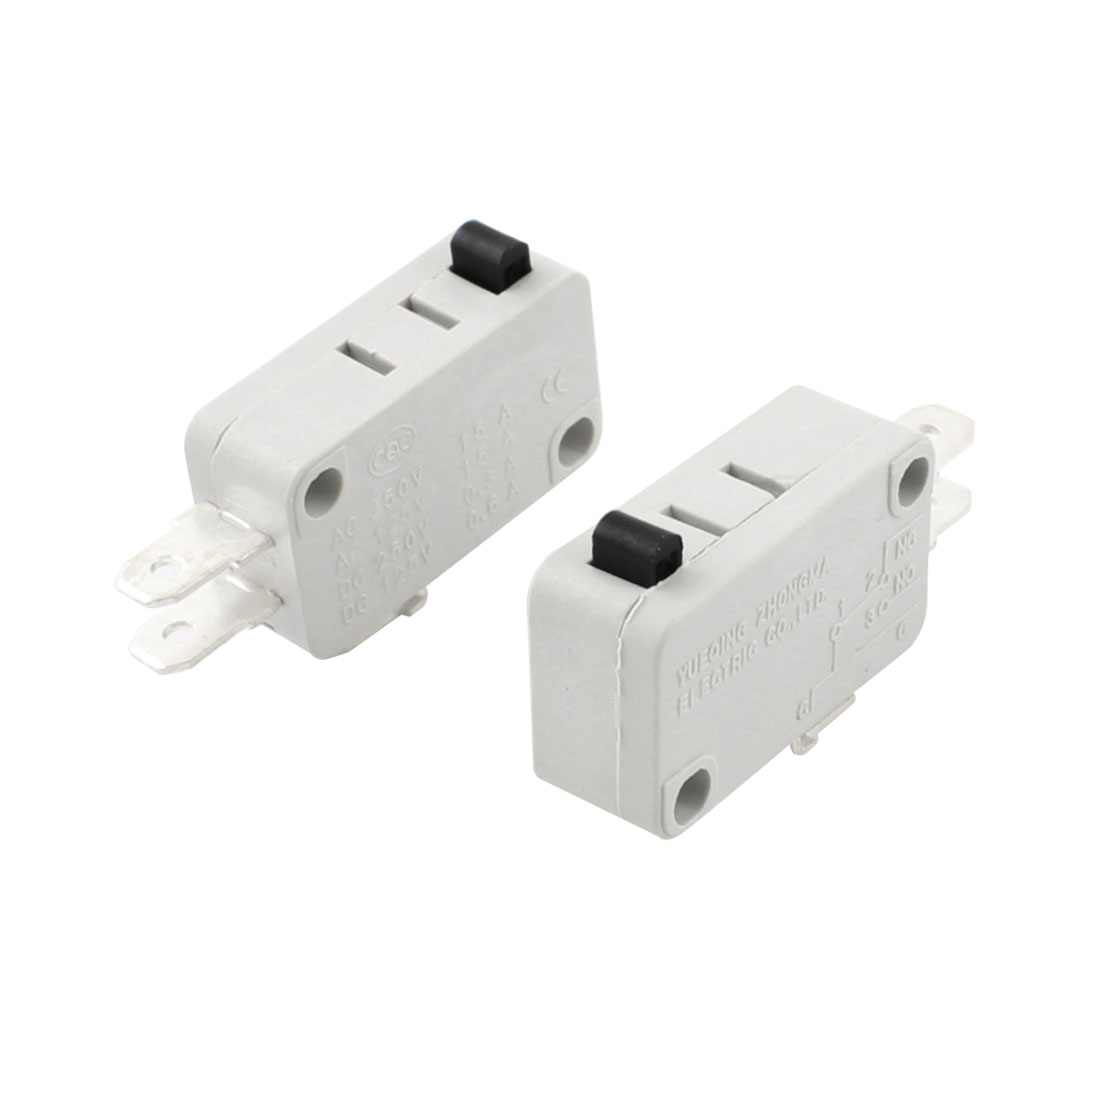 2Pcs SPDT 1NO+1NC Memontary Push Button Actuator Rectangle White Micro Limit Switch AC 250V 15A